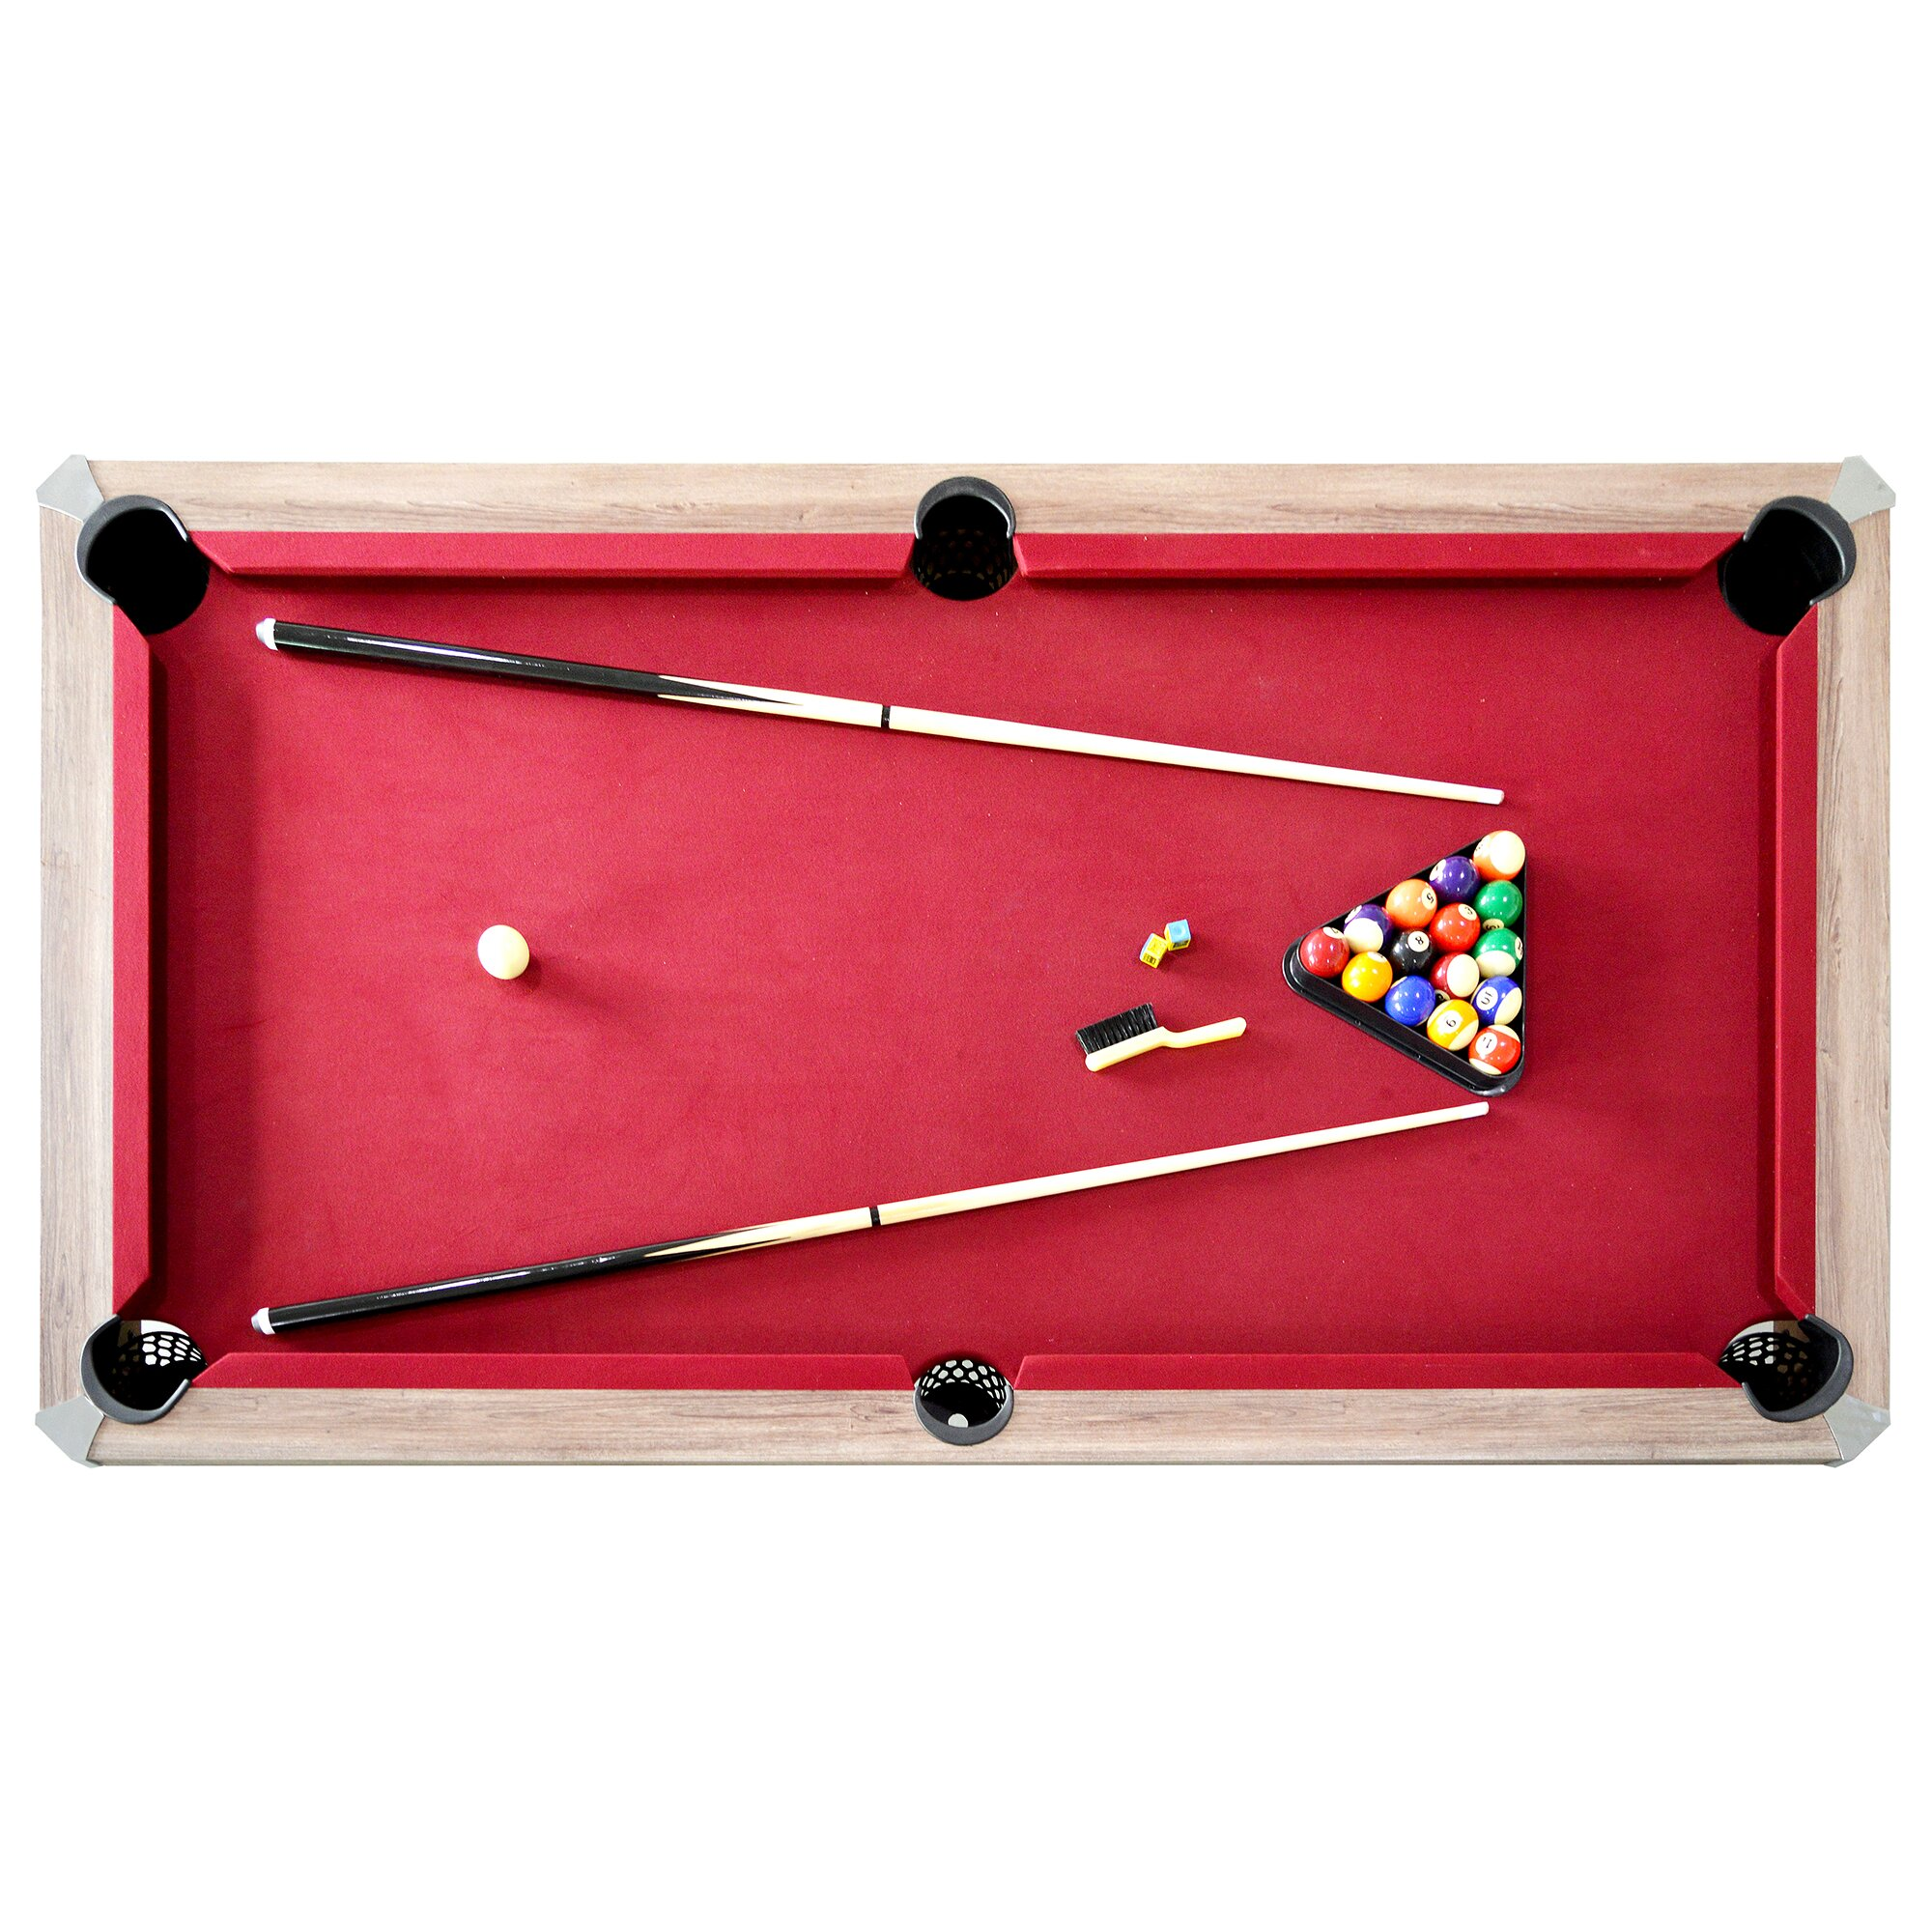 hathaway games newport 2 piece 7 39 pool table set reviews wayfair. Black Bedroom Furniture Sets. Home Design Ideas